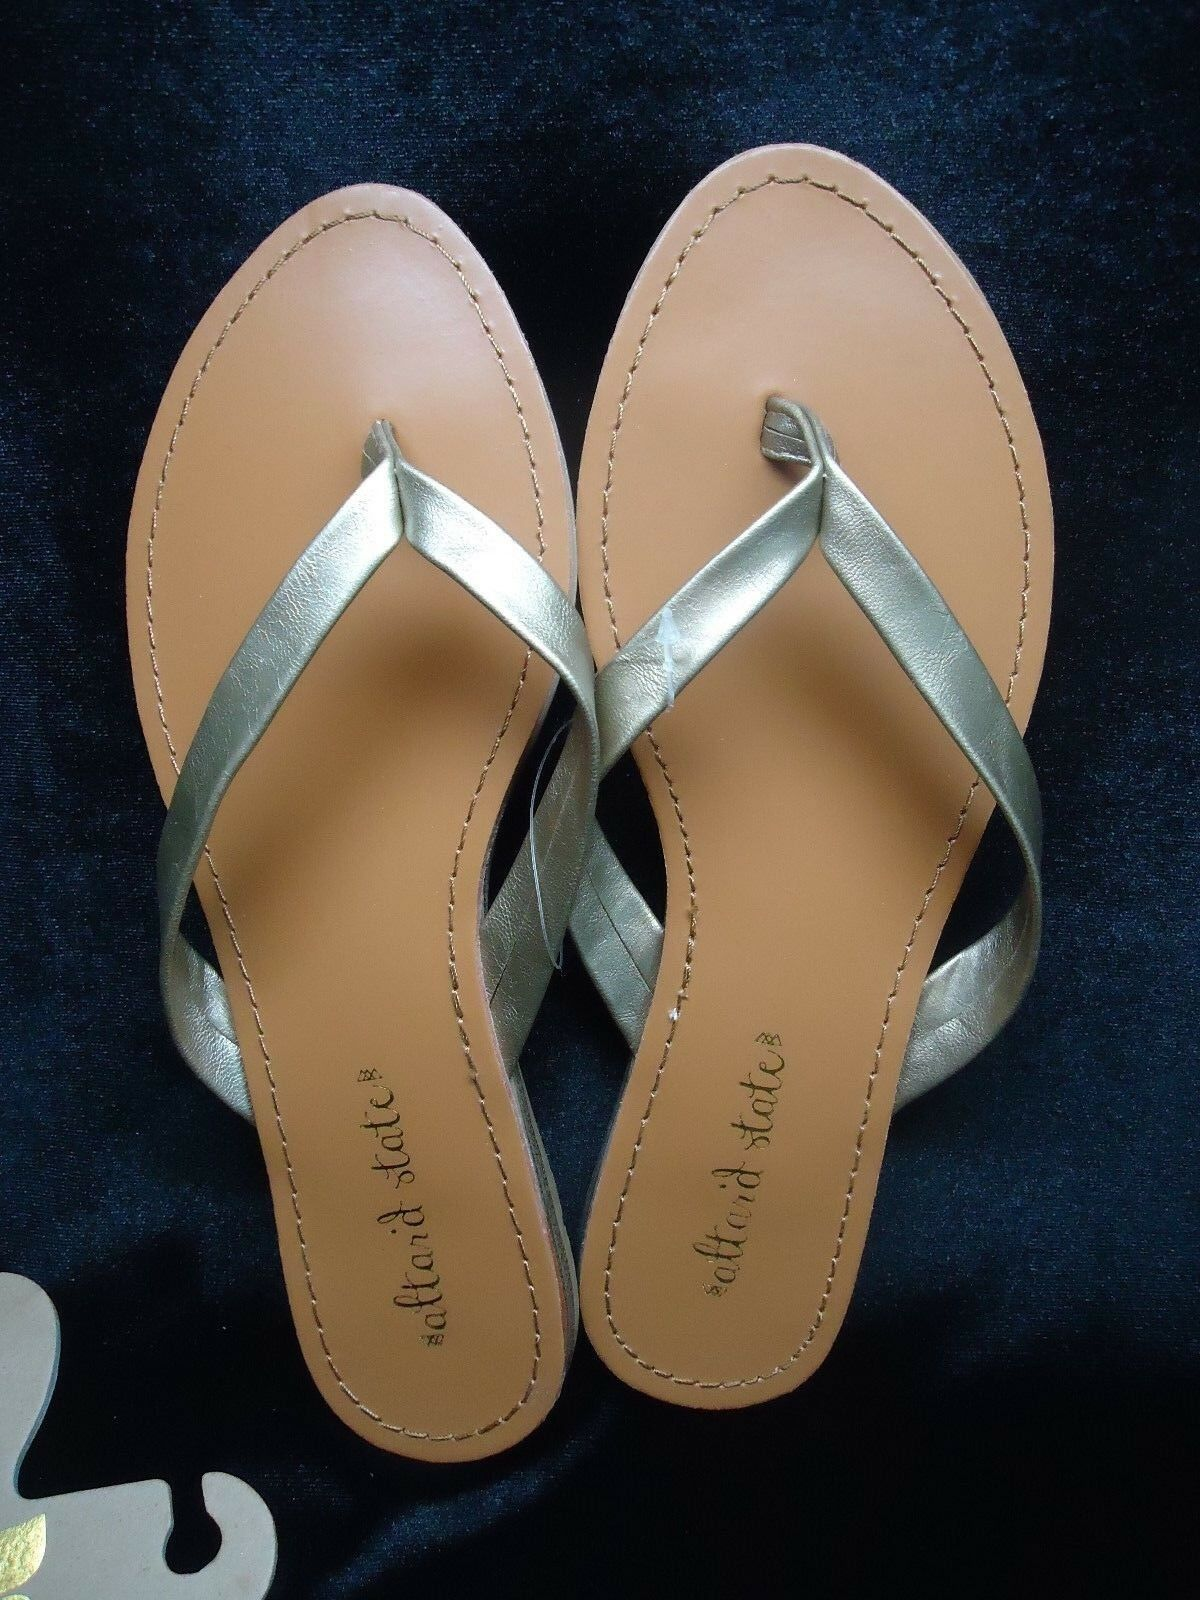 NEW $25 altar'd state Flip Flops Sizes Gold Shiny Straps Assorted Sizes Flops 6-8 NO BOX 049f21